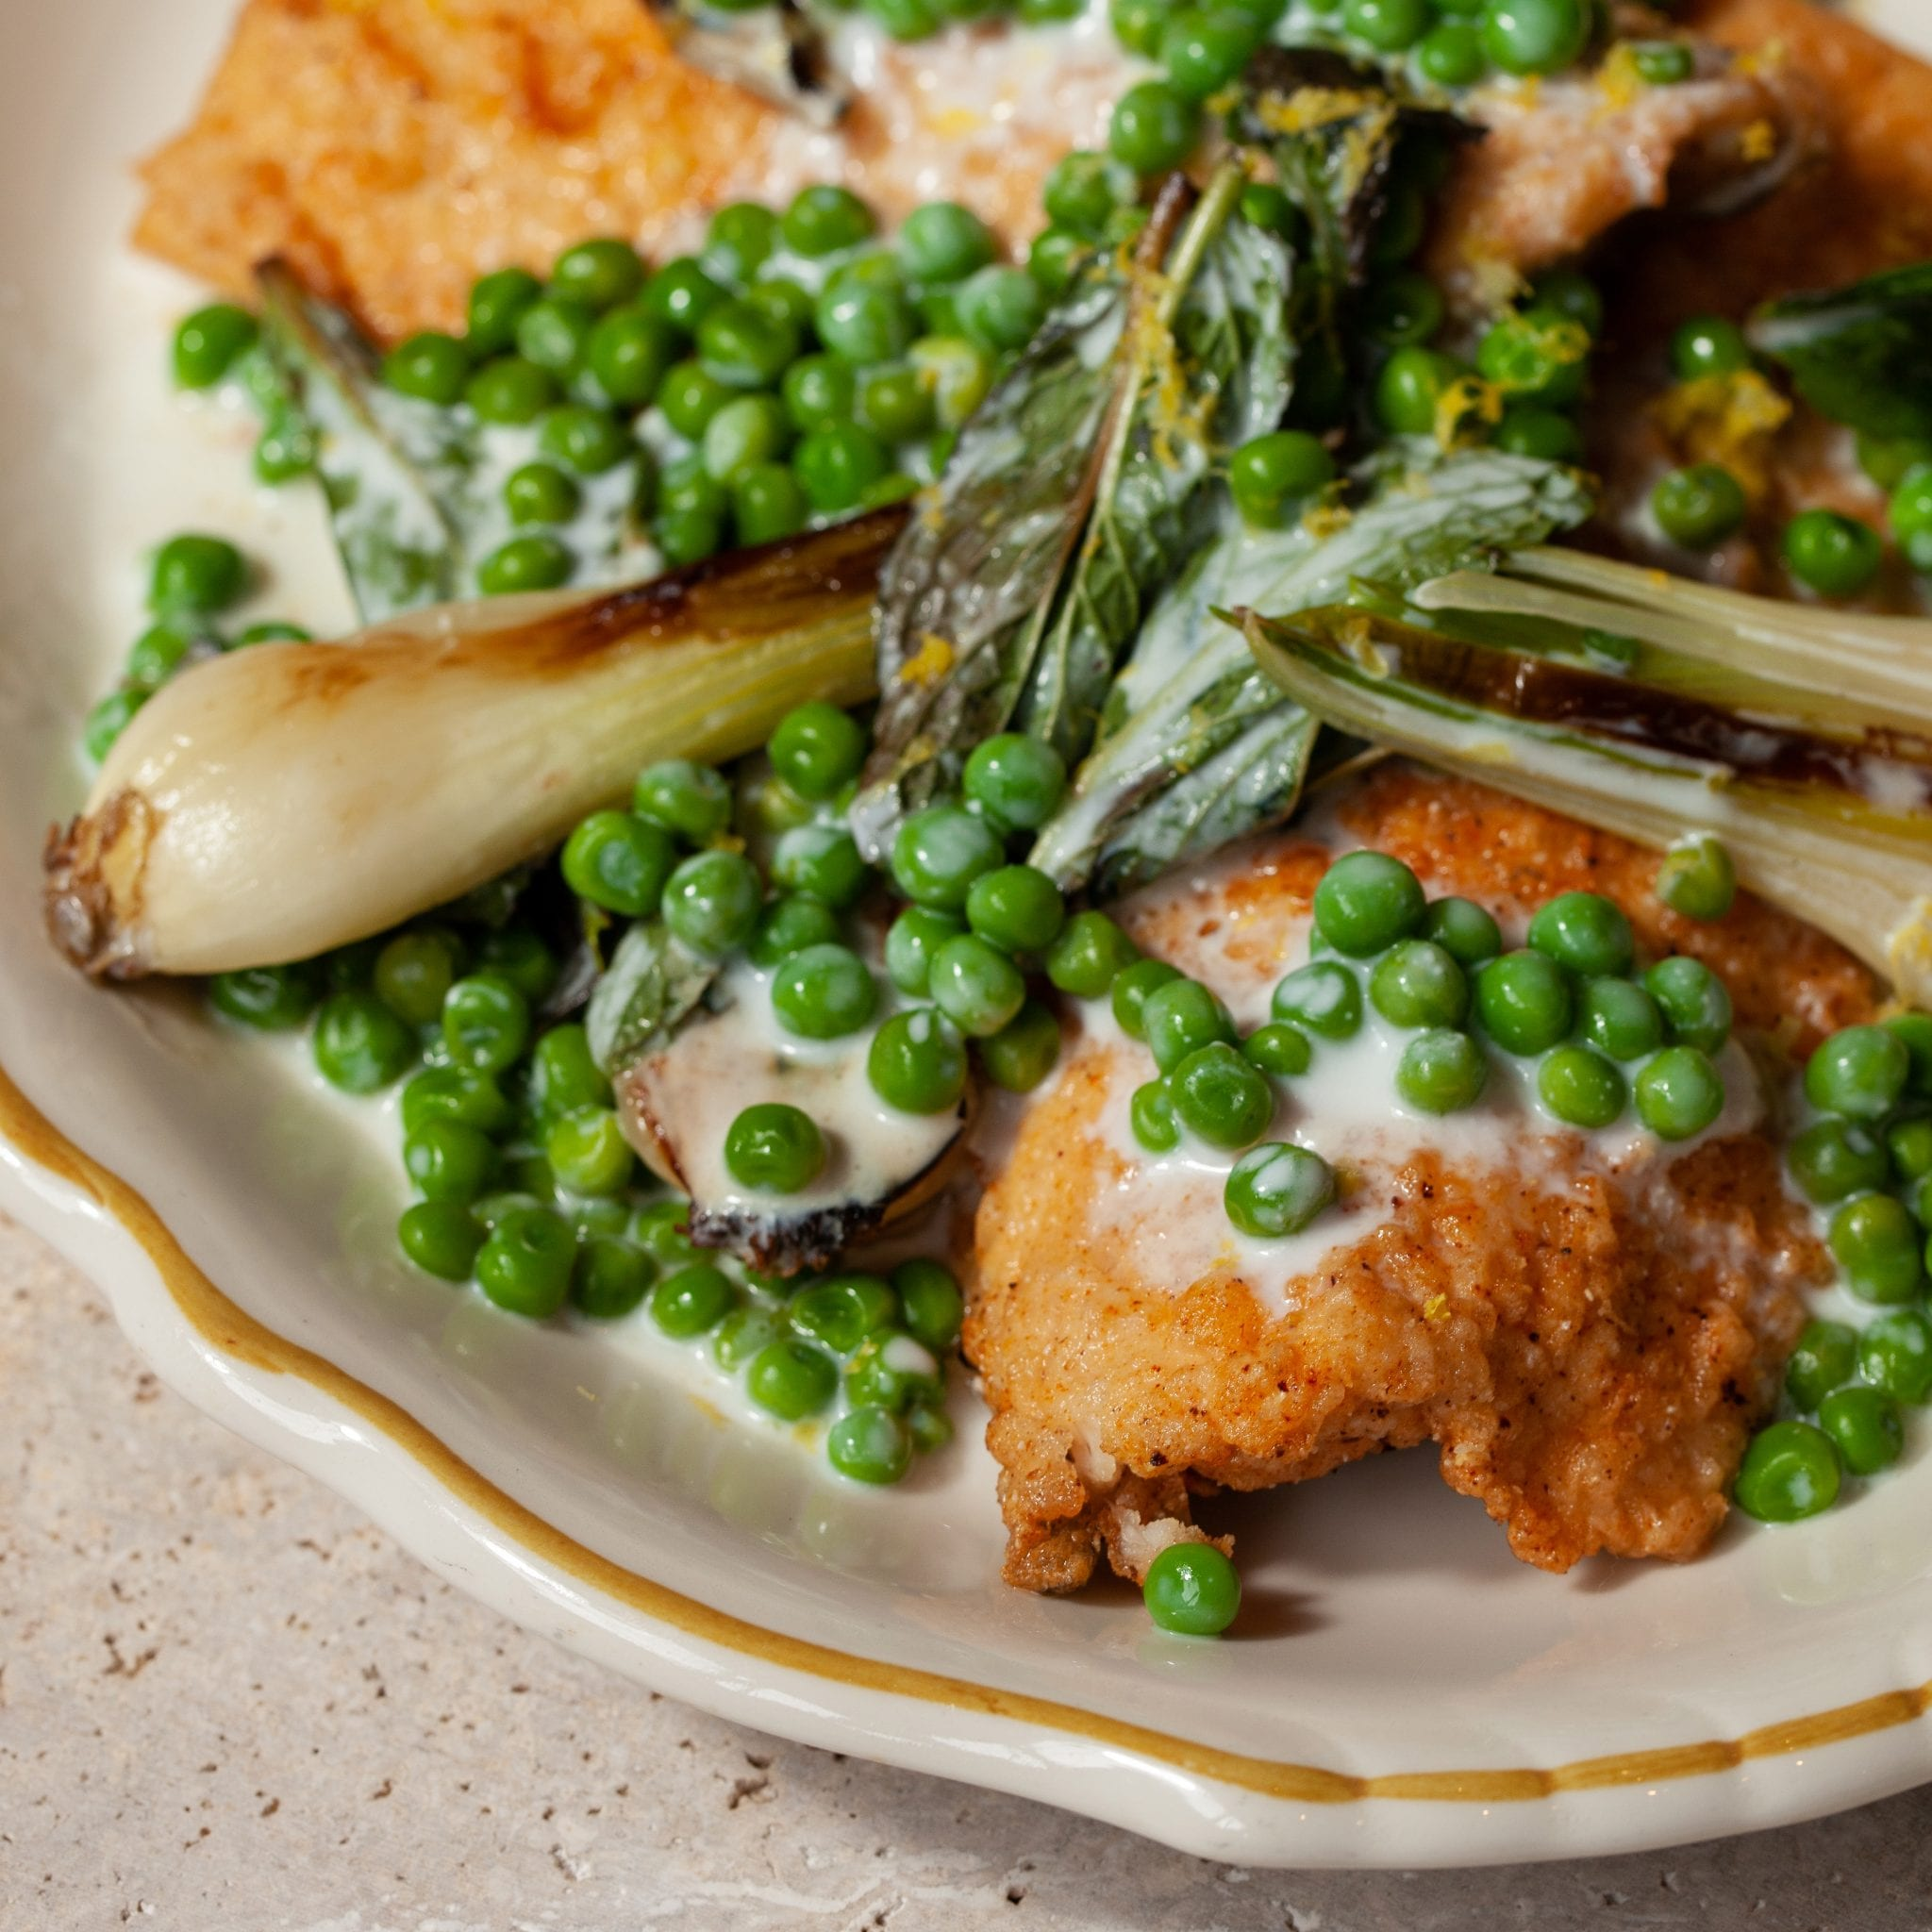 Cornmeal-Fried Trout with Spring Peas, Onions, and Nettles